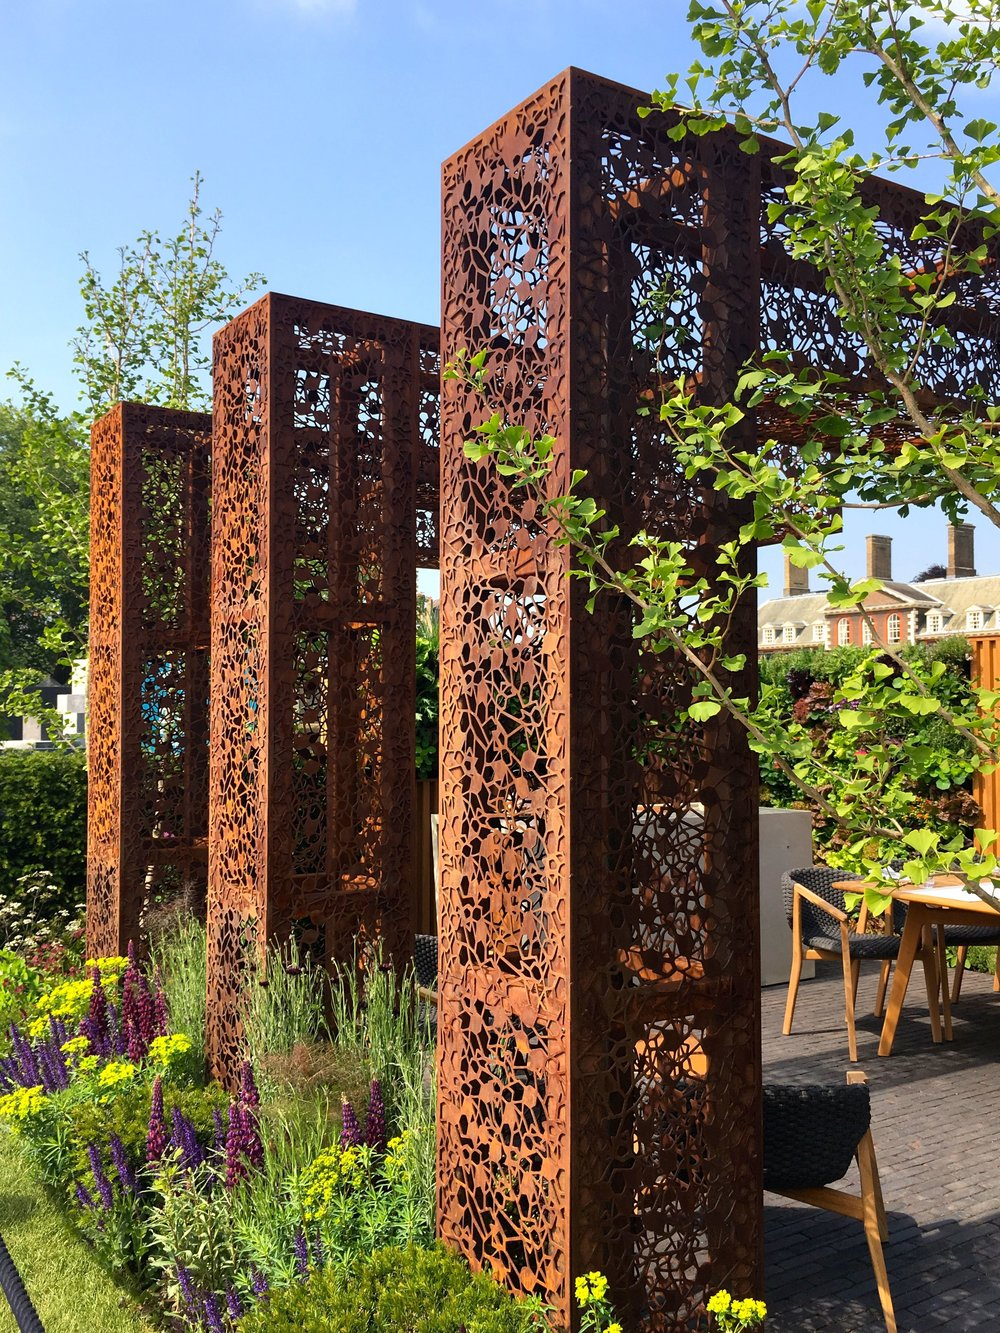 LACE PATTERNED CORTEN STEEL IN THE GOLD MEDAL URBAN FLOW GARDEN